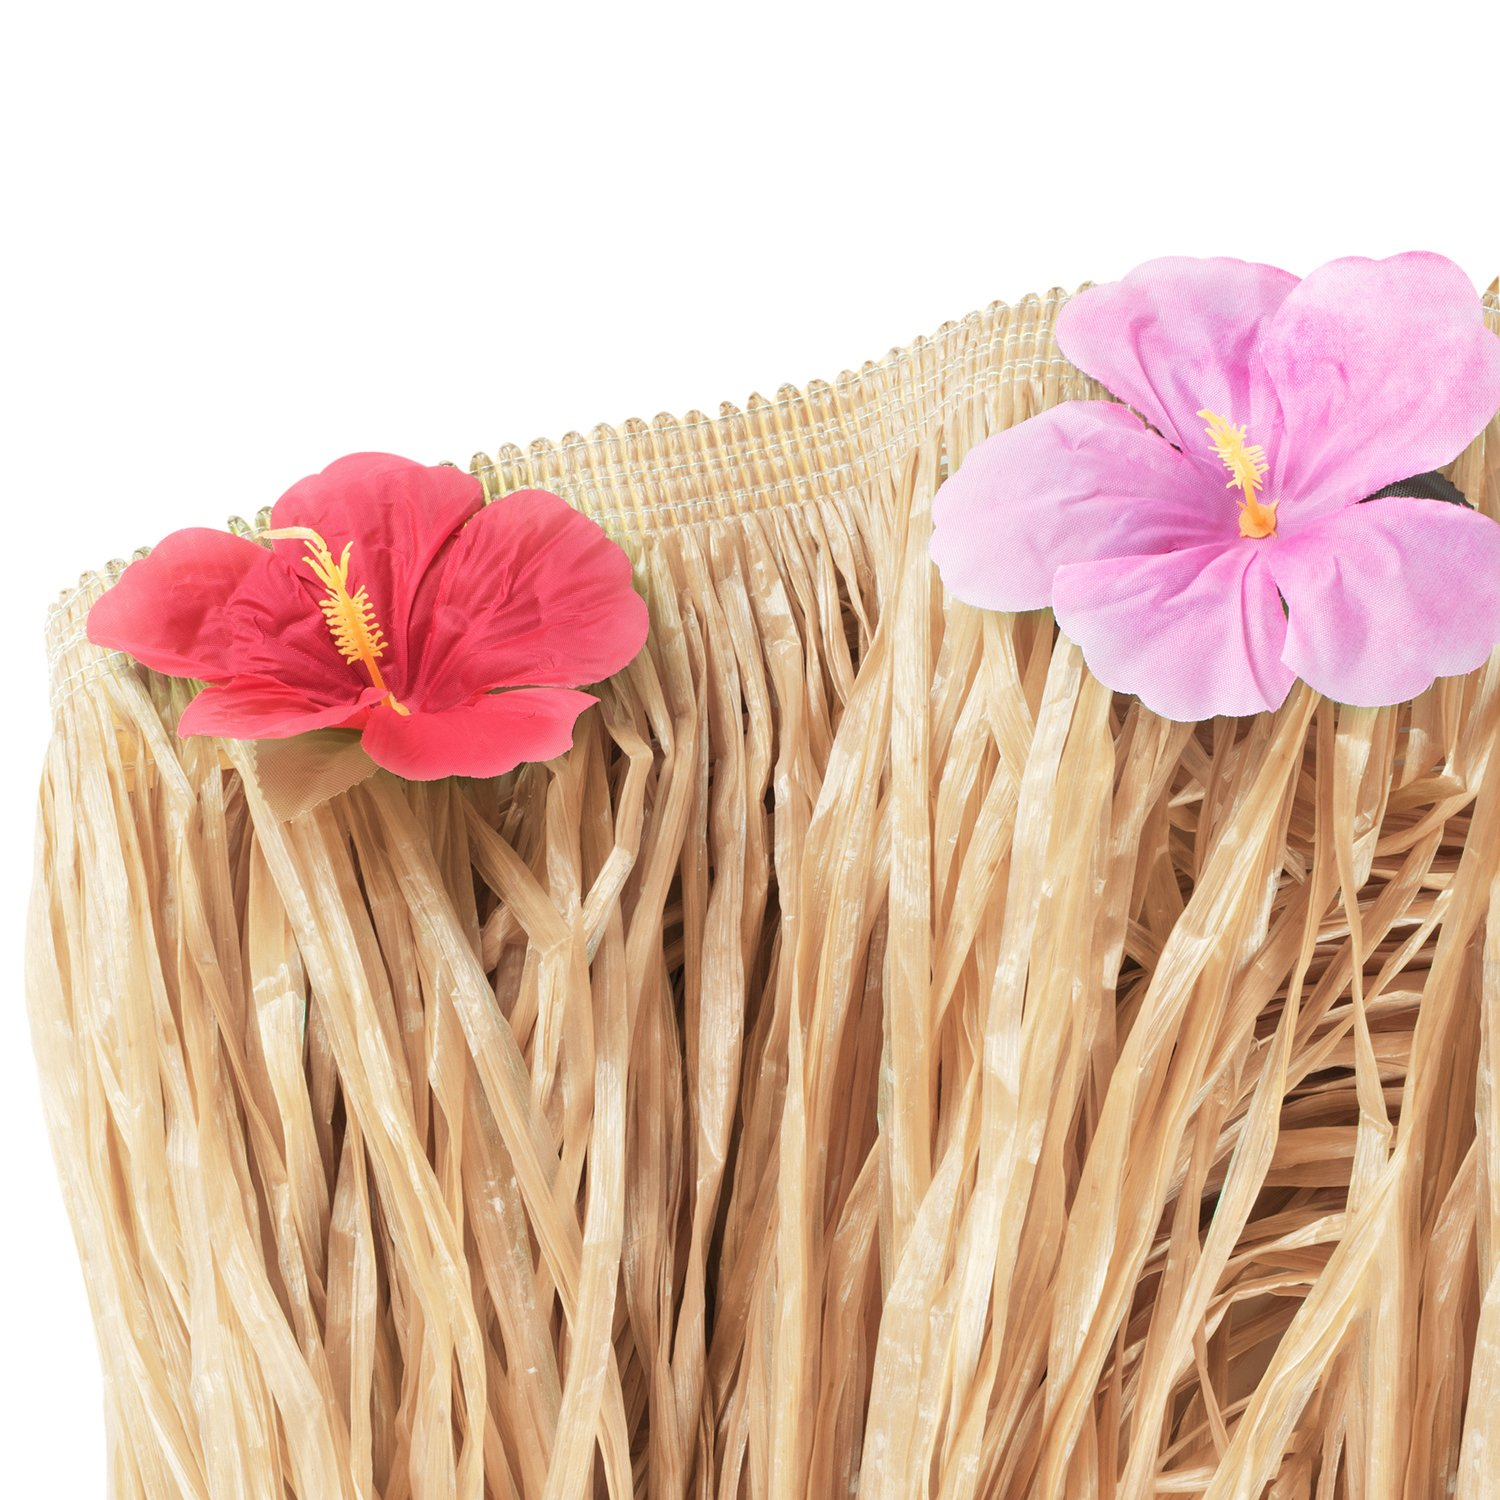 Hawaiian Luau Hibiscus Natural Color String & Colorful Sproilk Faux Flowers Table Hula Grass Skirt for Party Decoration, Events, Birthdays, Celebration (1 Pack) by Super Z Outlet (Image #3)